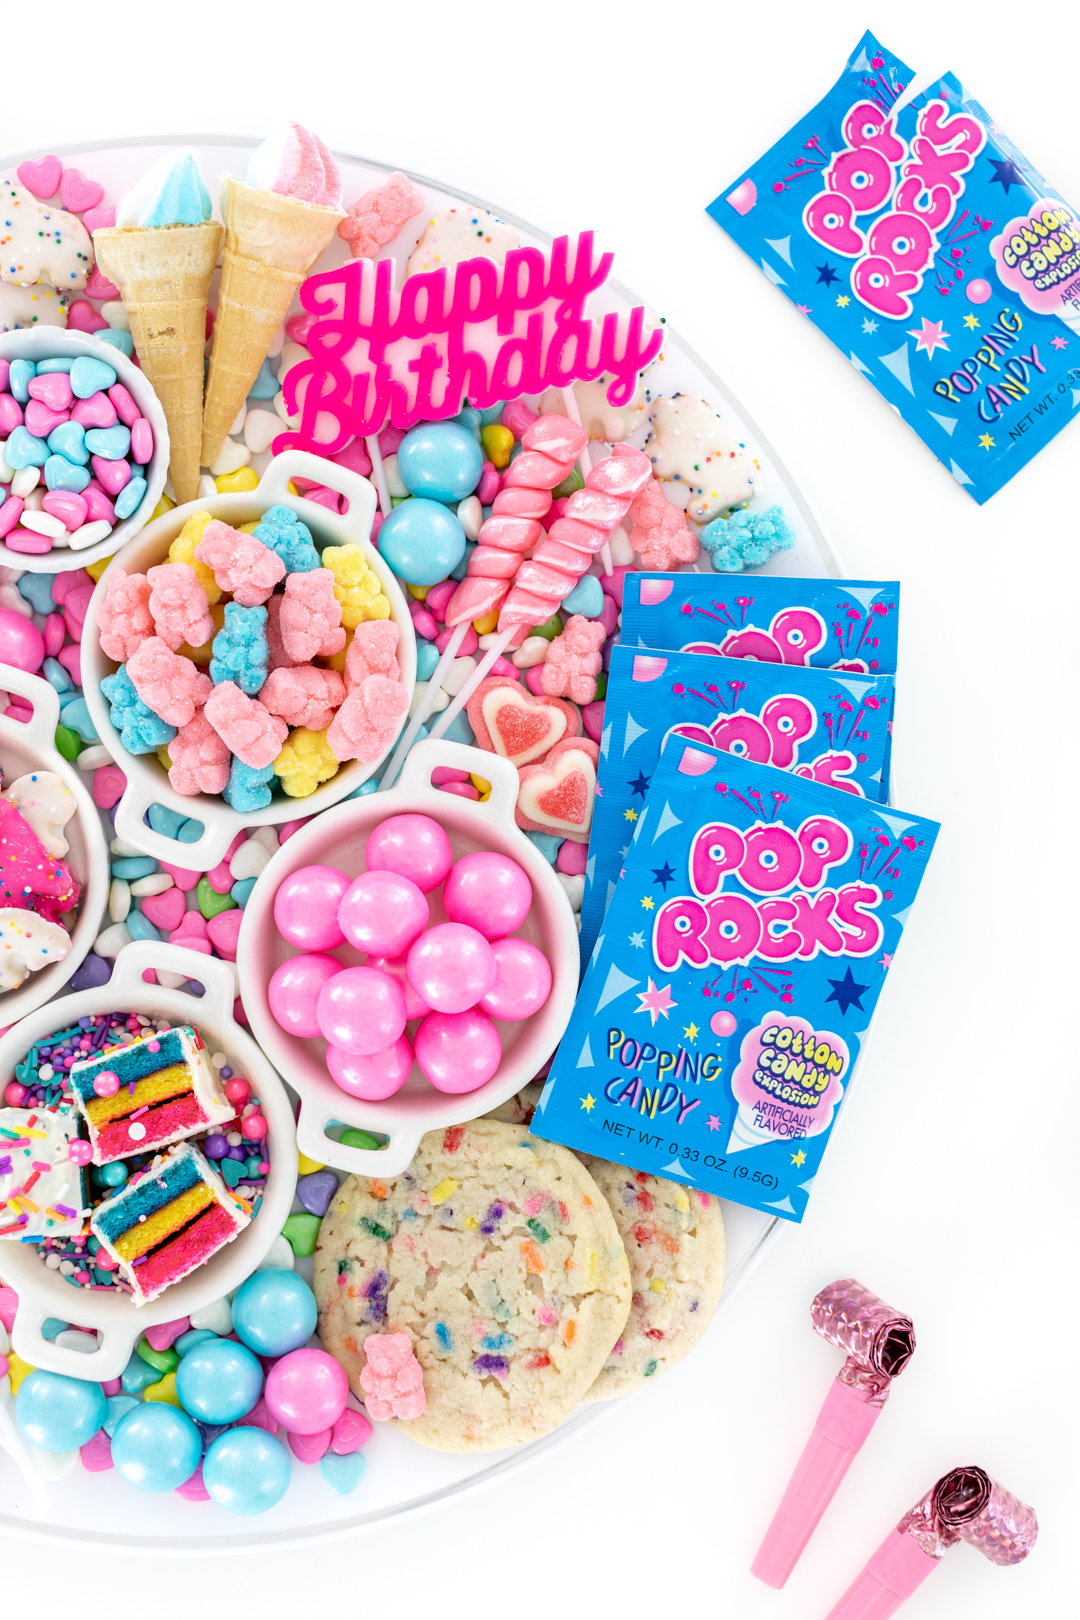 Tray of candies with Cotton Candy Pop Rocks